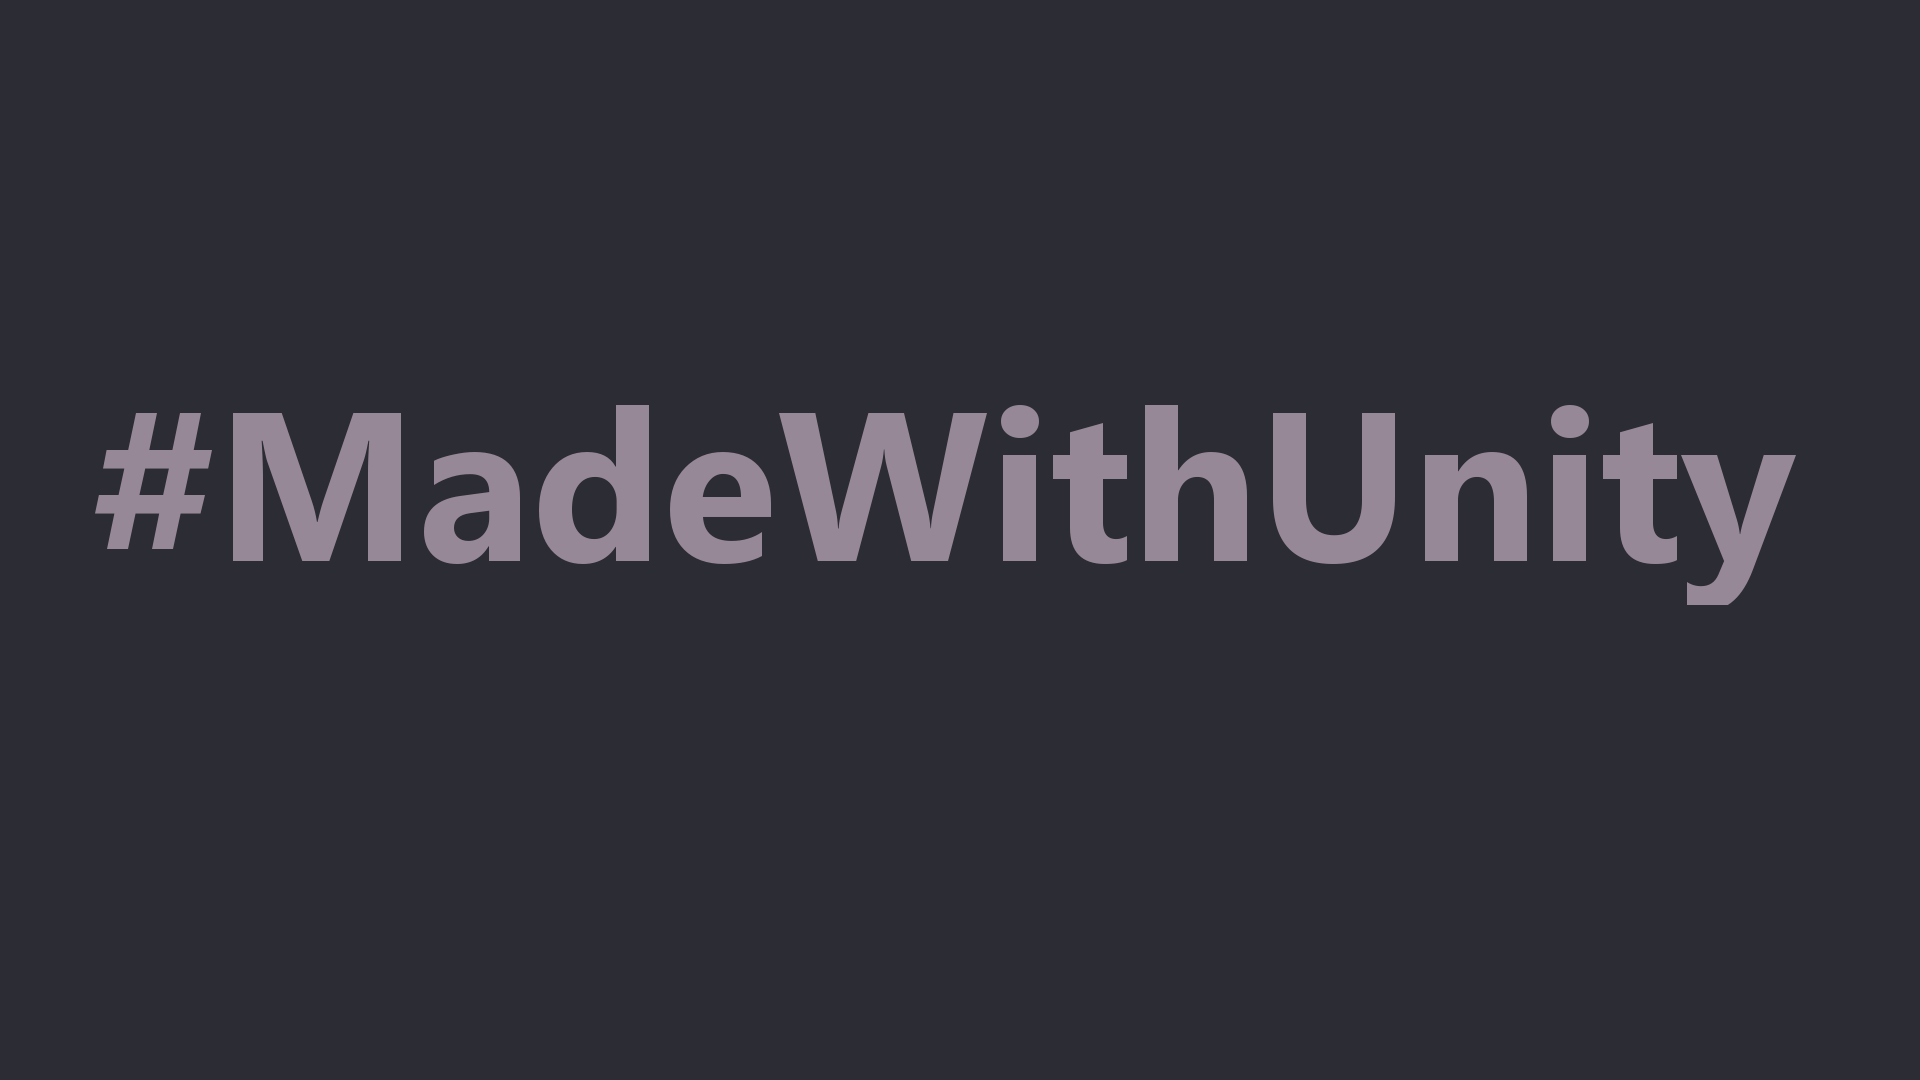 Play it because is #MadeWithUnity